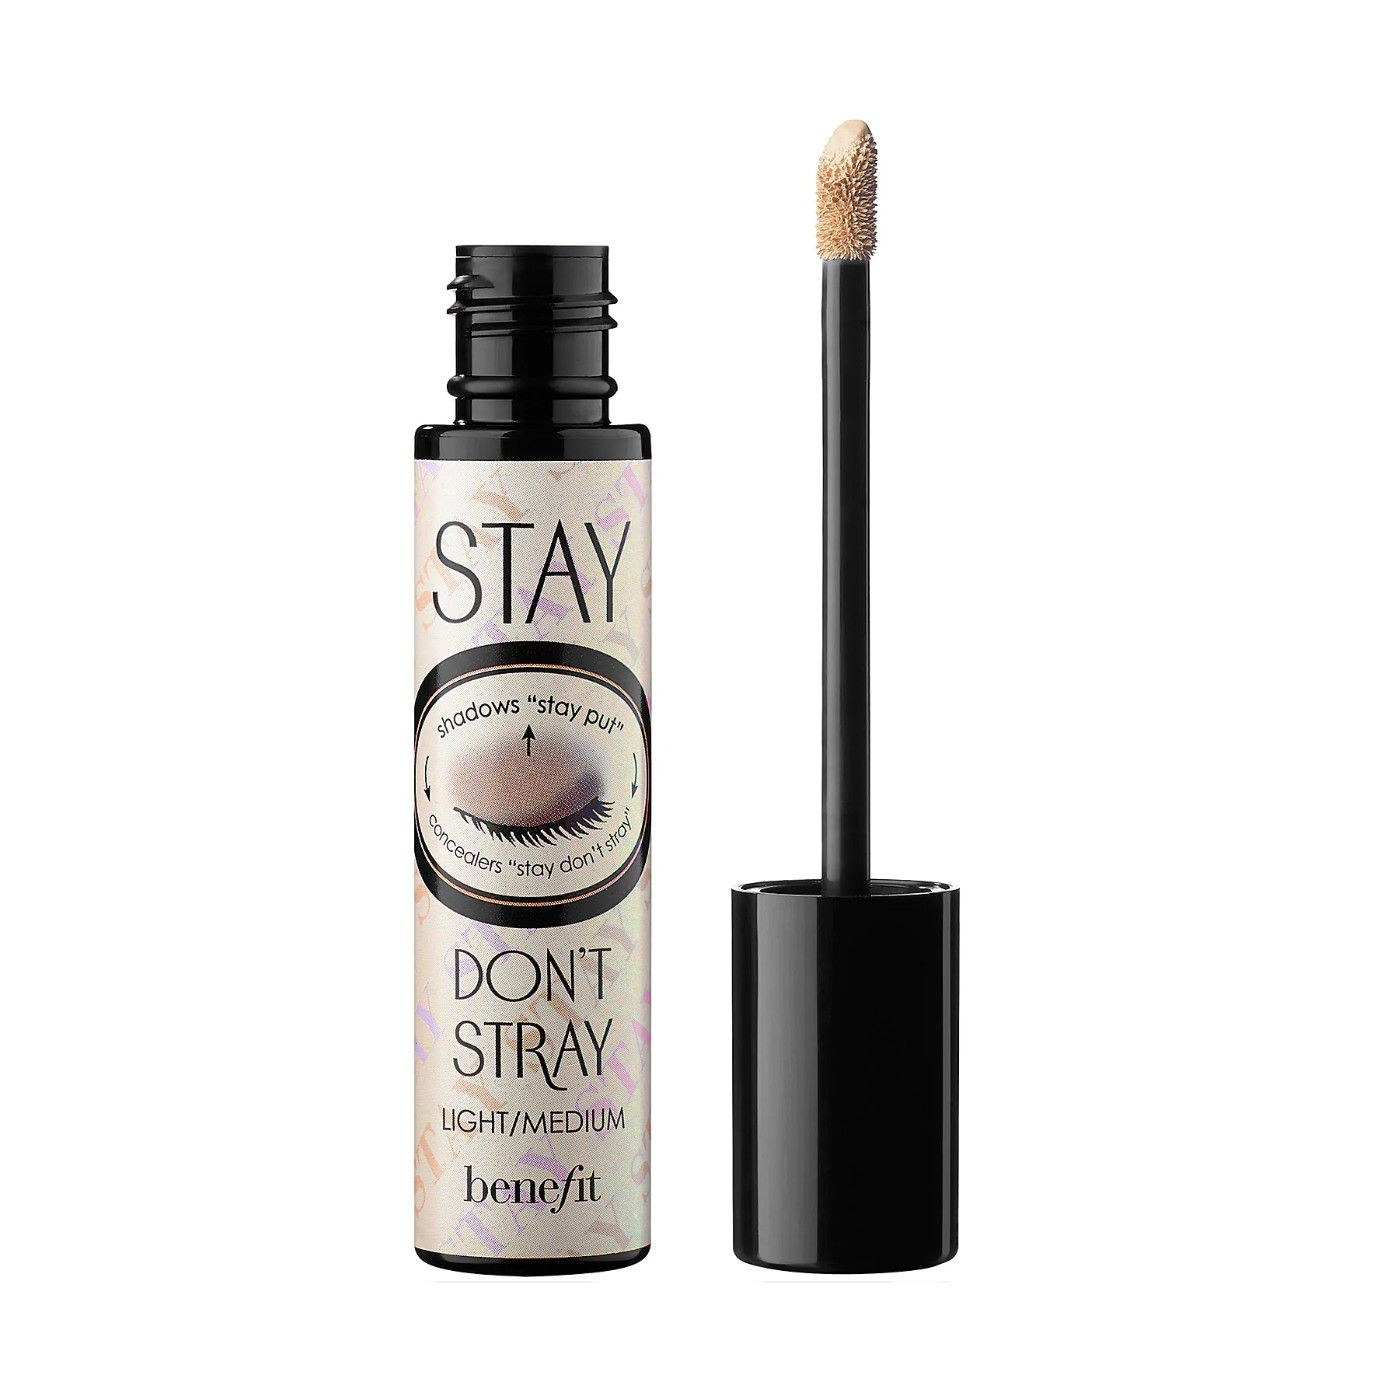 Stay Don't Stray 360 Degree Stay Put Eyeshadow Primer on a white background.